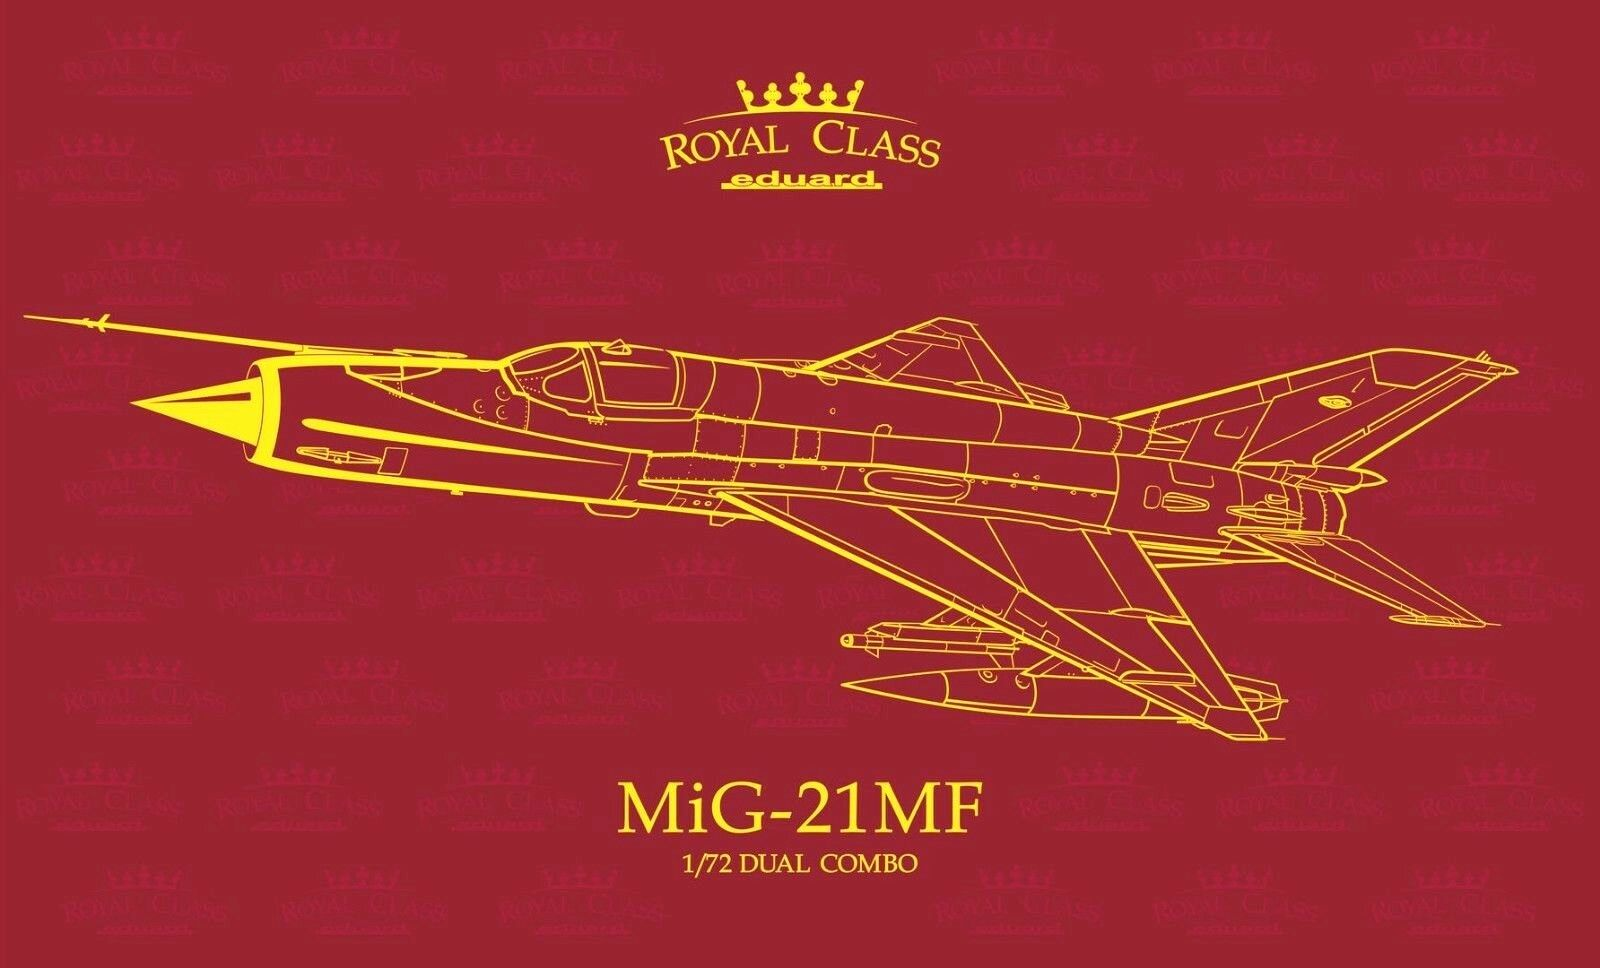 Eduard Royal Class 1 72 MiG-21MF Dual Combo Two Aircraft Model Kit